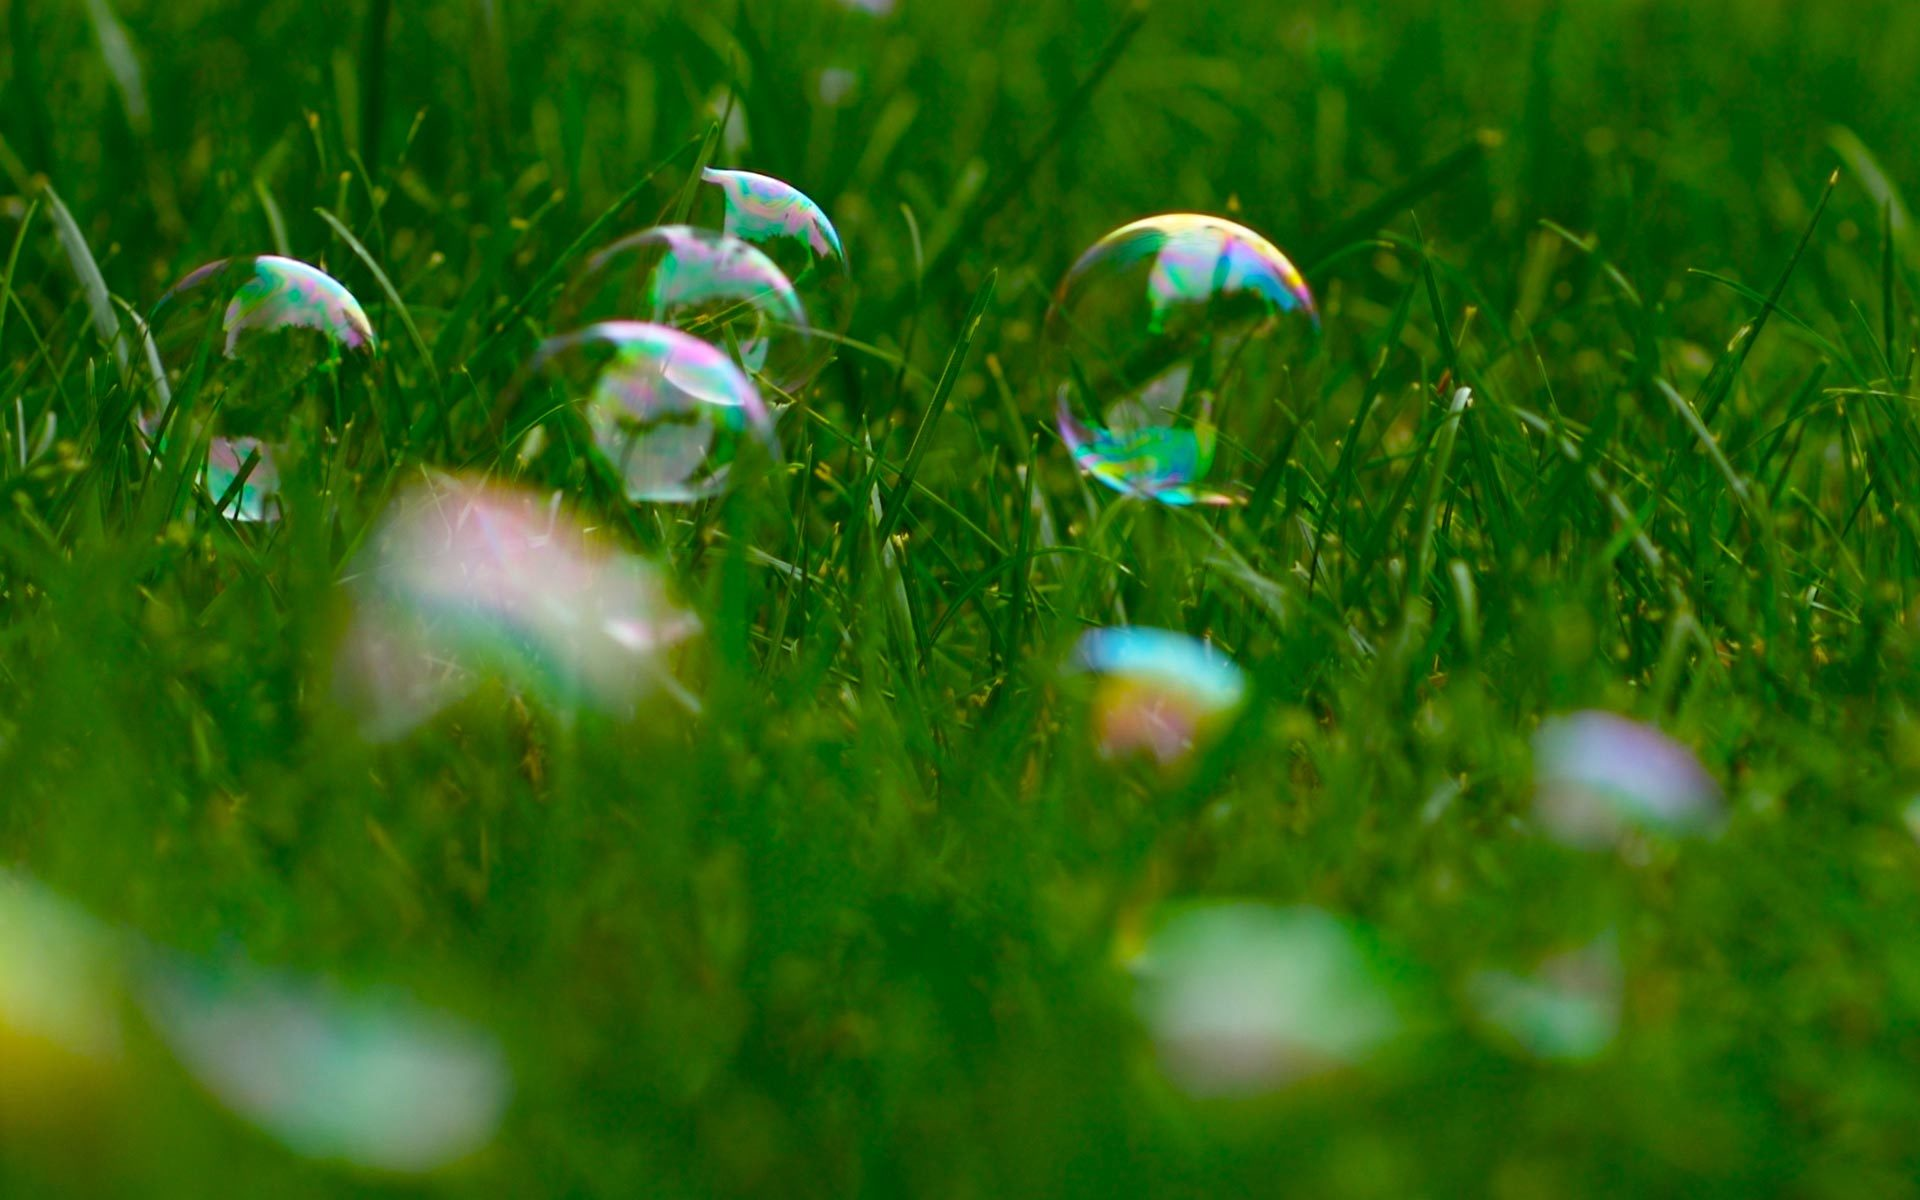 22174 download wallpaper Plants, Grass, Bubbles screensavers and pictures for free